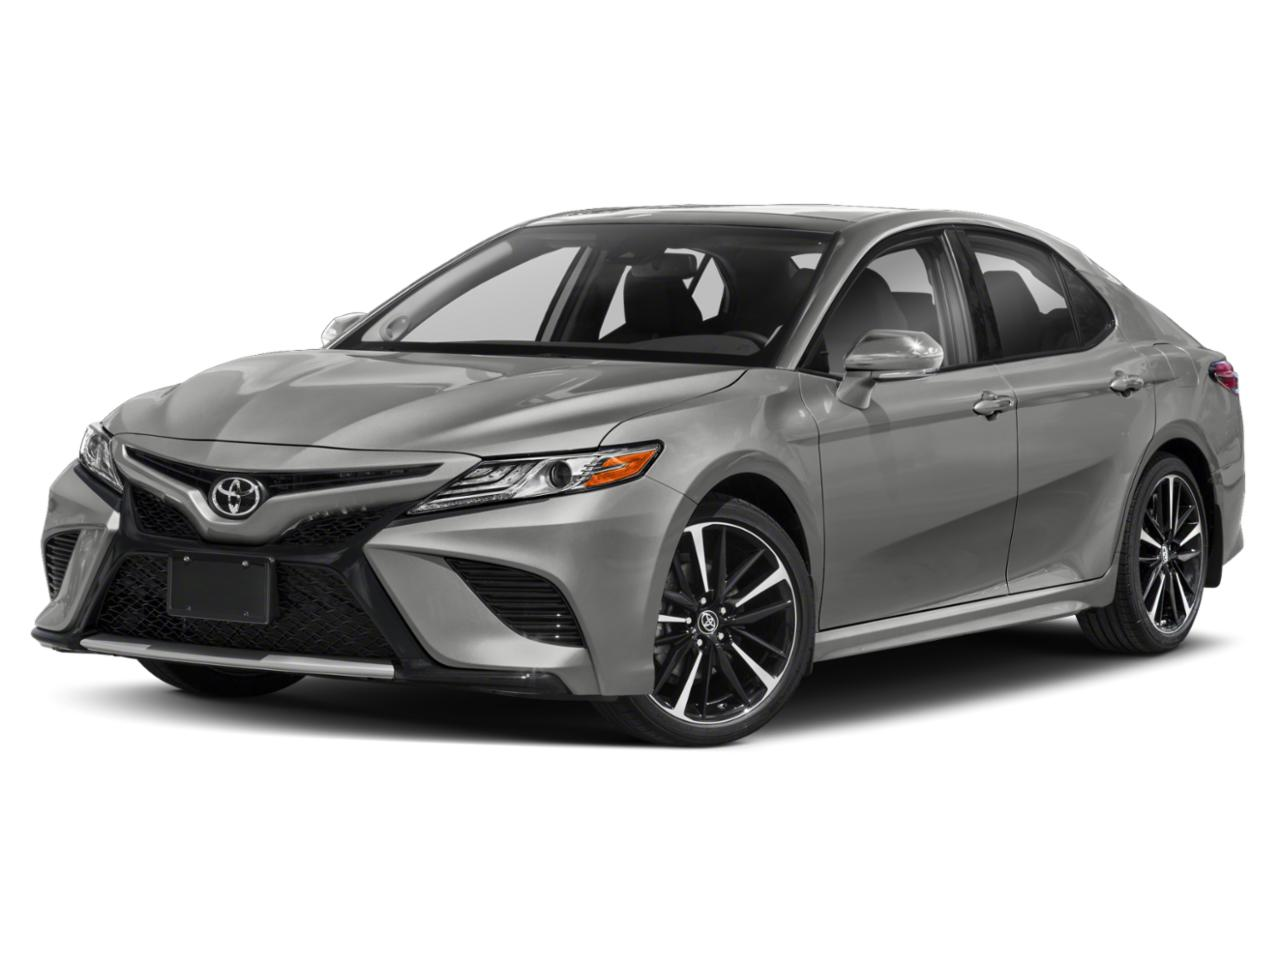 2020 Toyota Camry Vehicle Photo in Akron, OH 44312